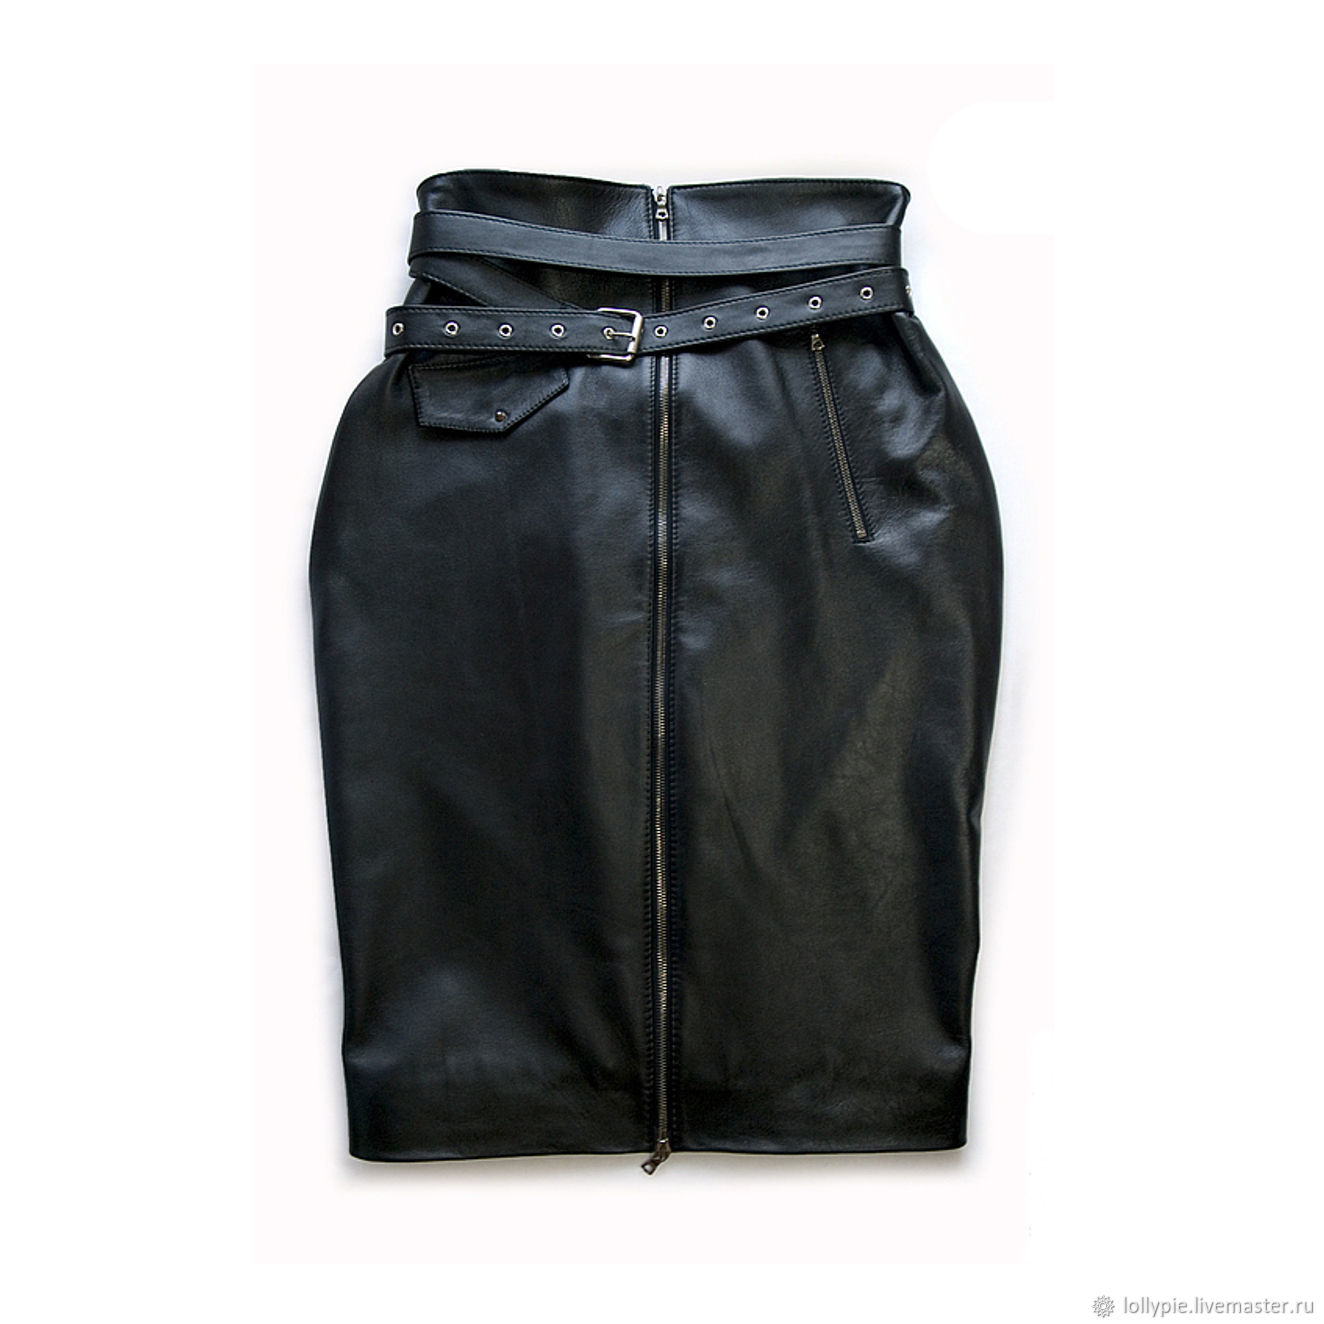 High-waisted leather pencil skirt, Skirts, Moscow,  Фото №1